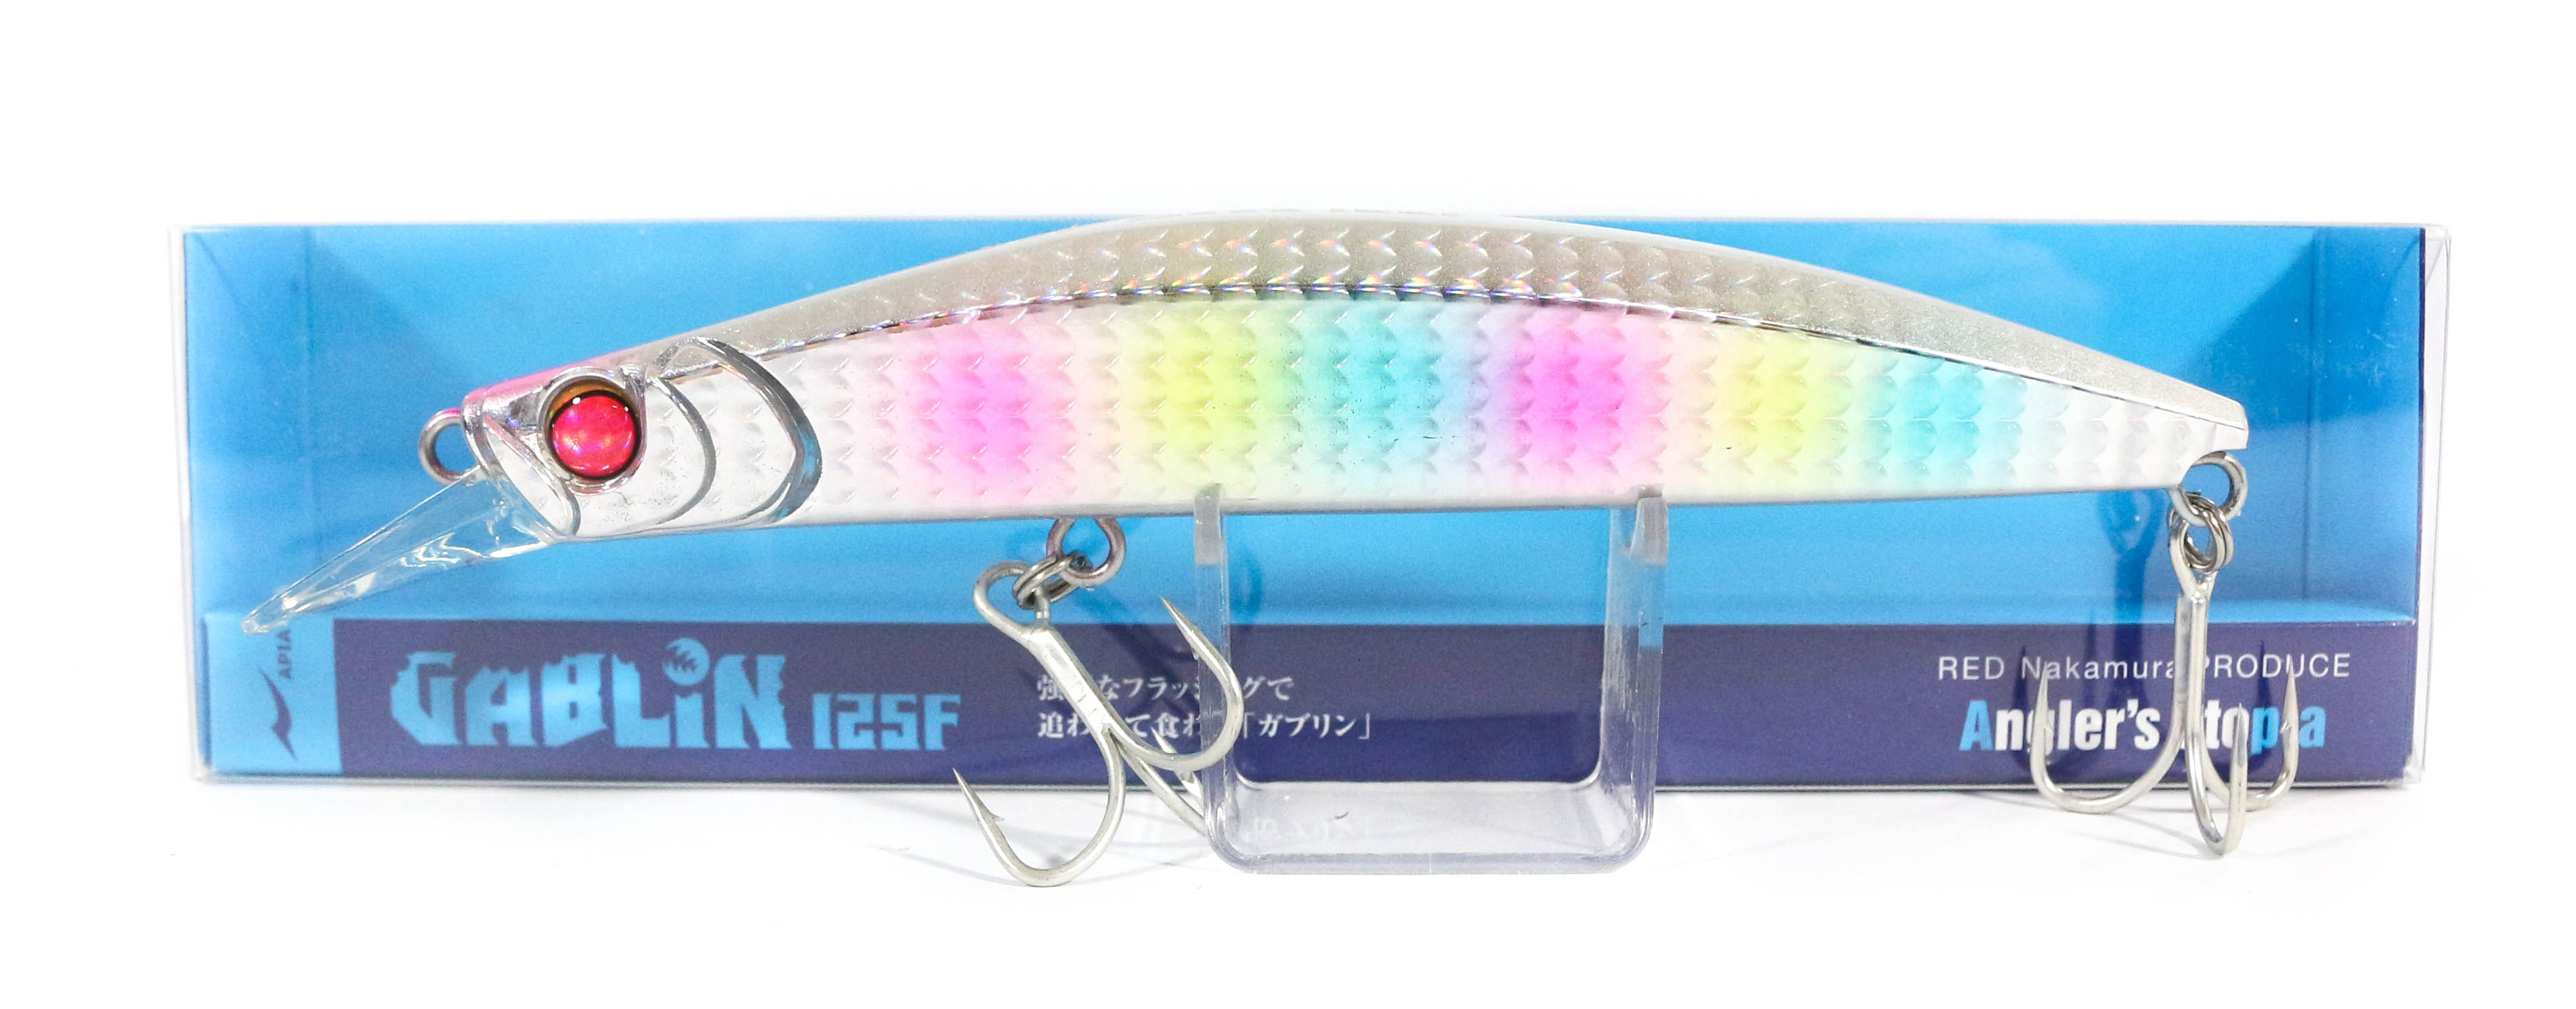 Sale Apia Gablin 125F Floating Lure 06 (7279)